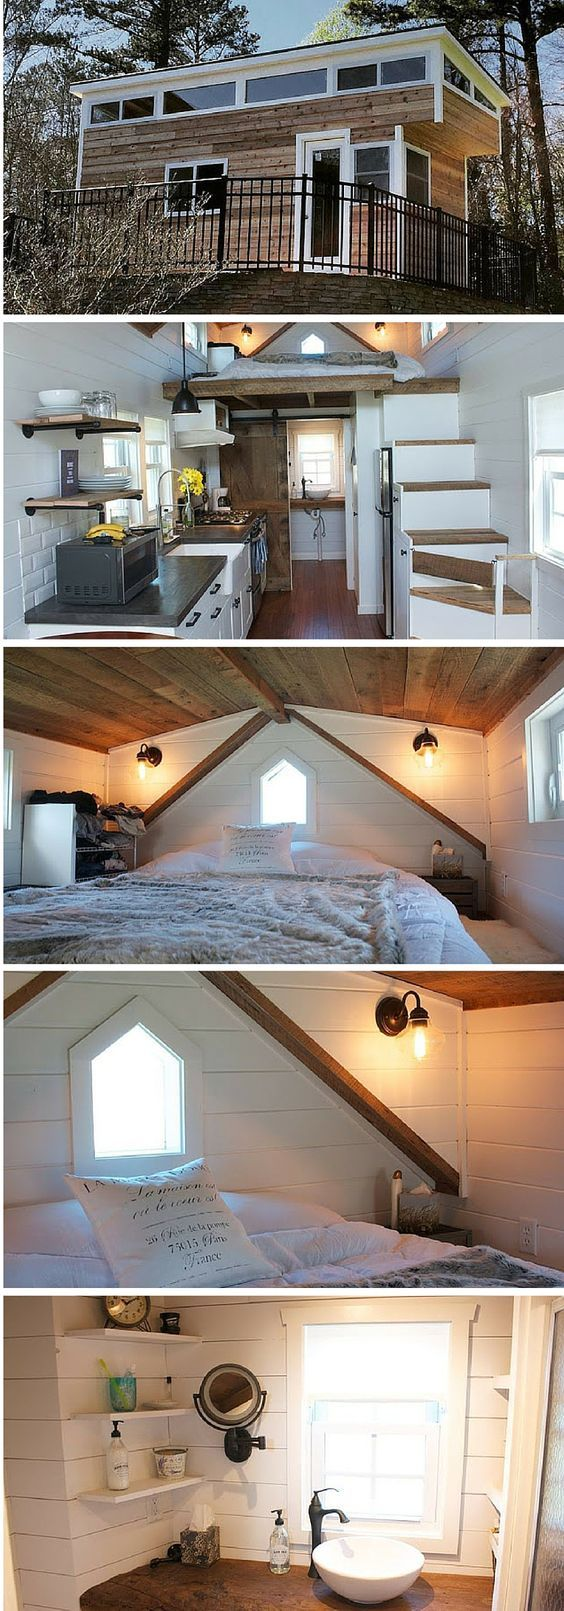 428 best tiny houses images on Pinterest Small houses Tiny